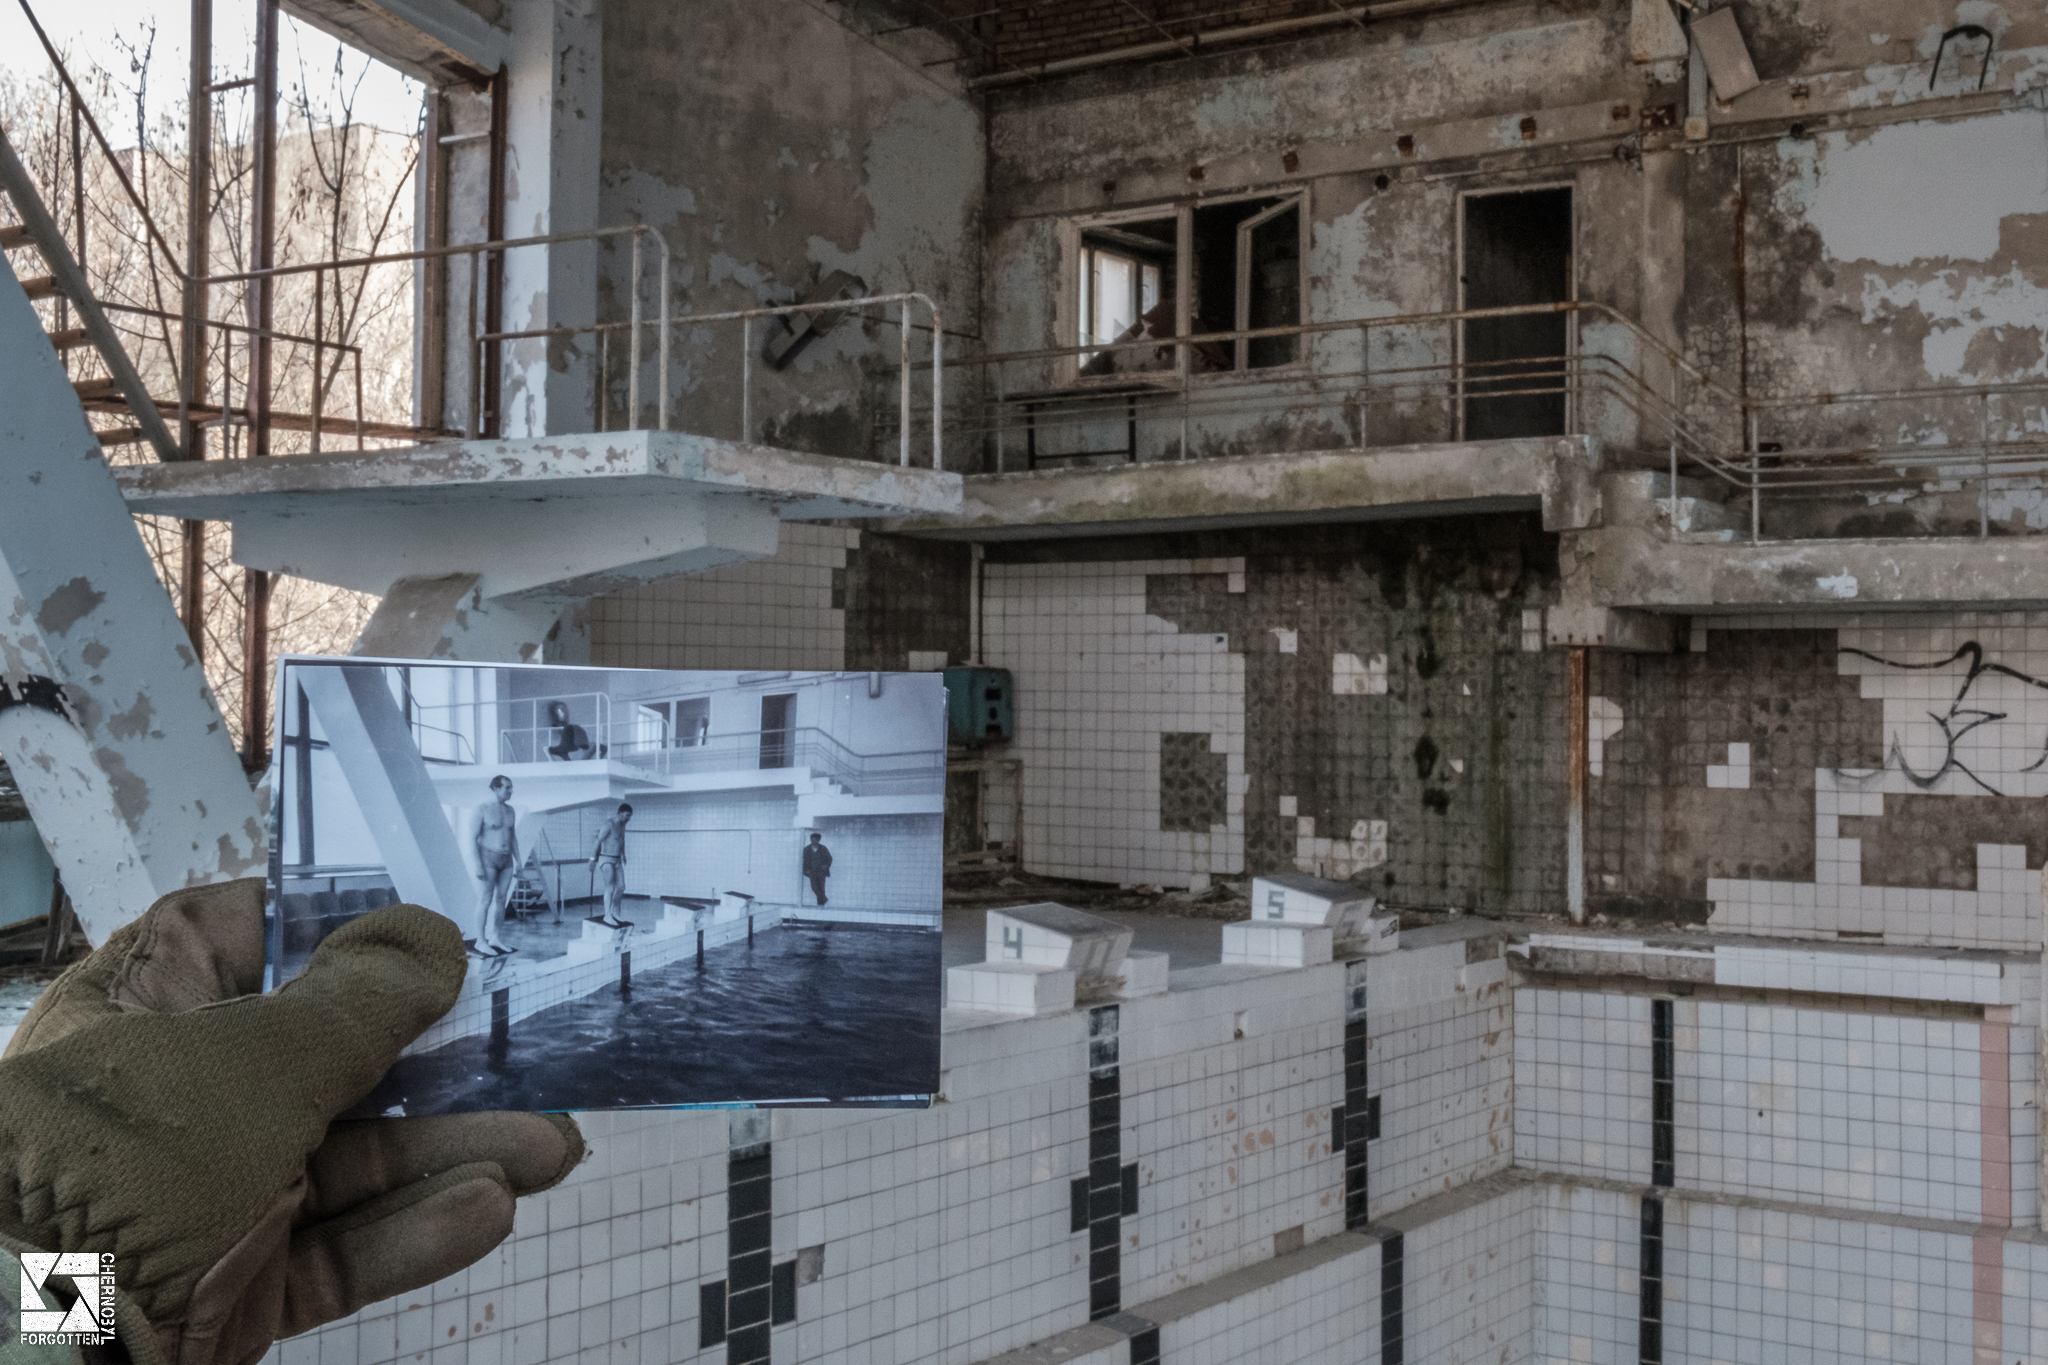 Pripyat Swimming Pool Before and After the Chernobyl Accident